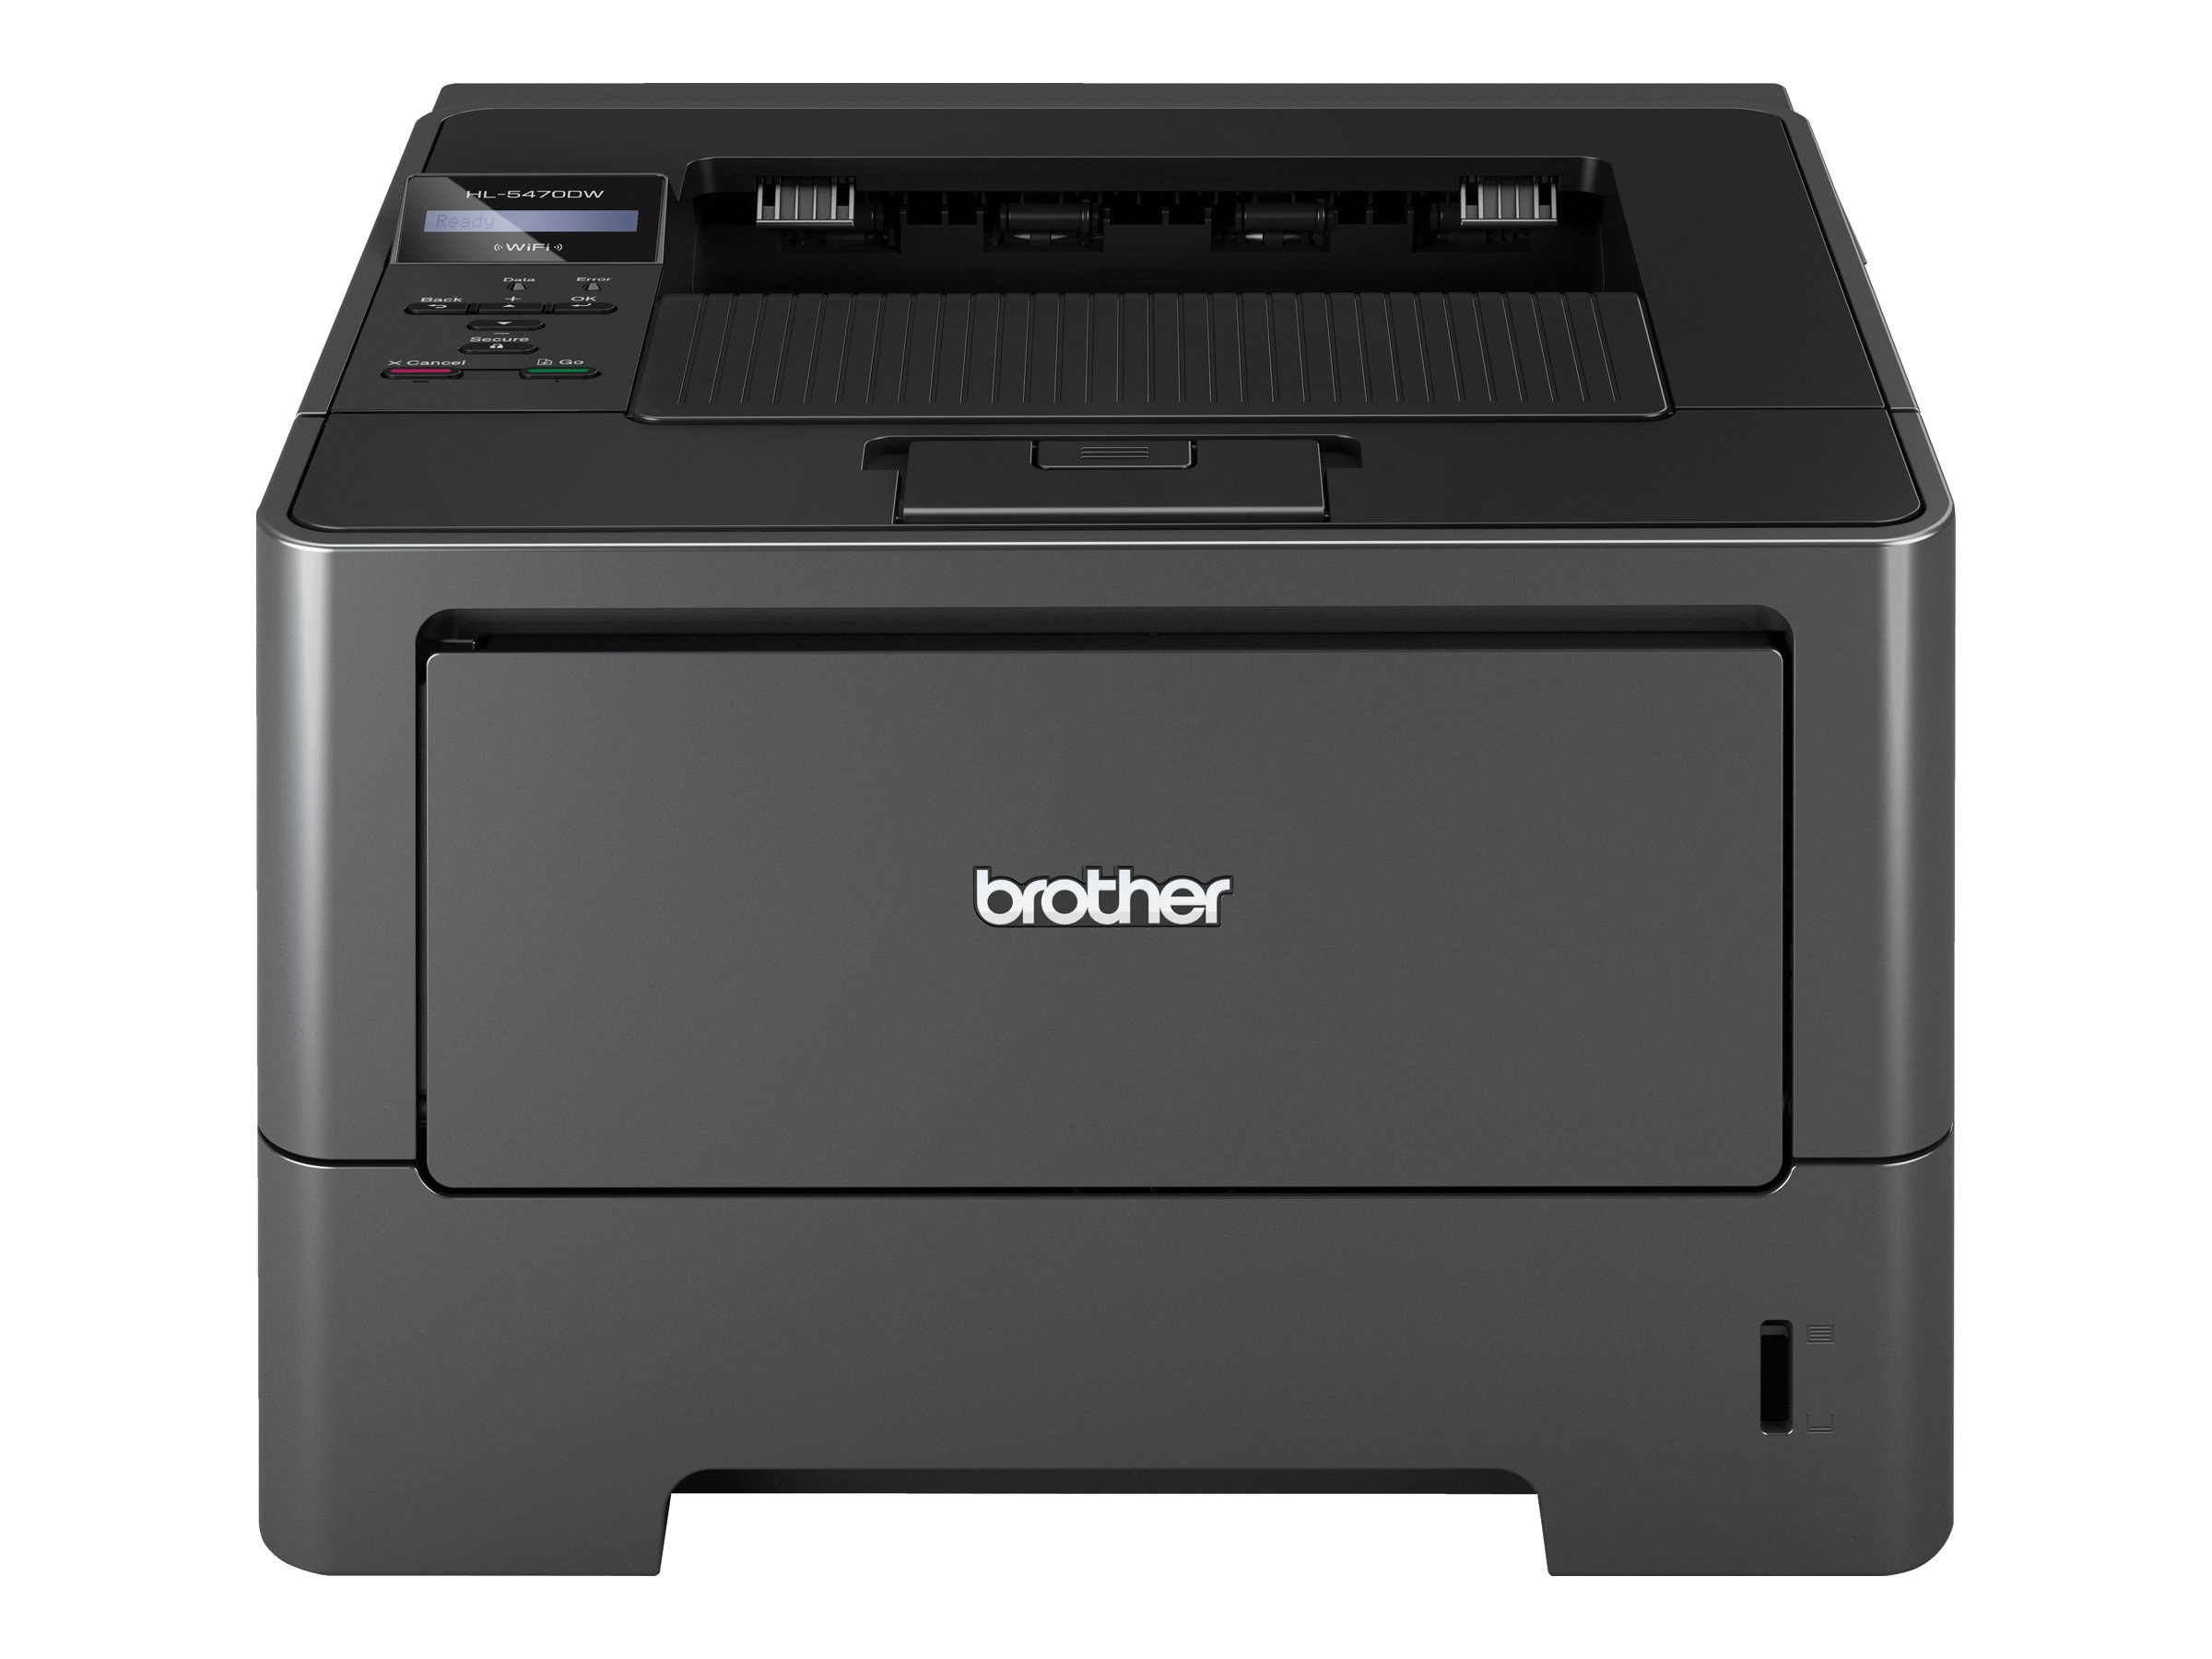 Brother HL-5470DW Laser Printer, HL-5470DW, 14040118, Printers - Laser & LED (monochrome)